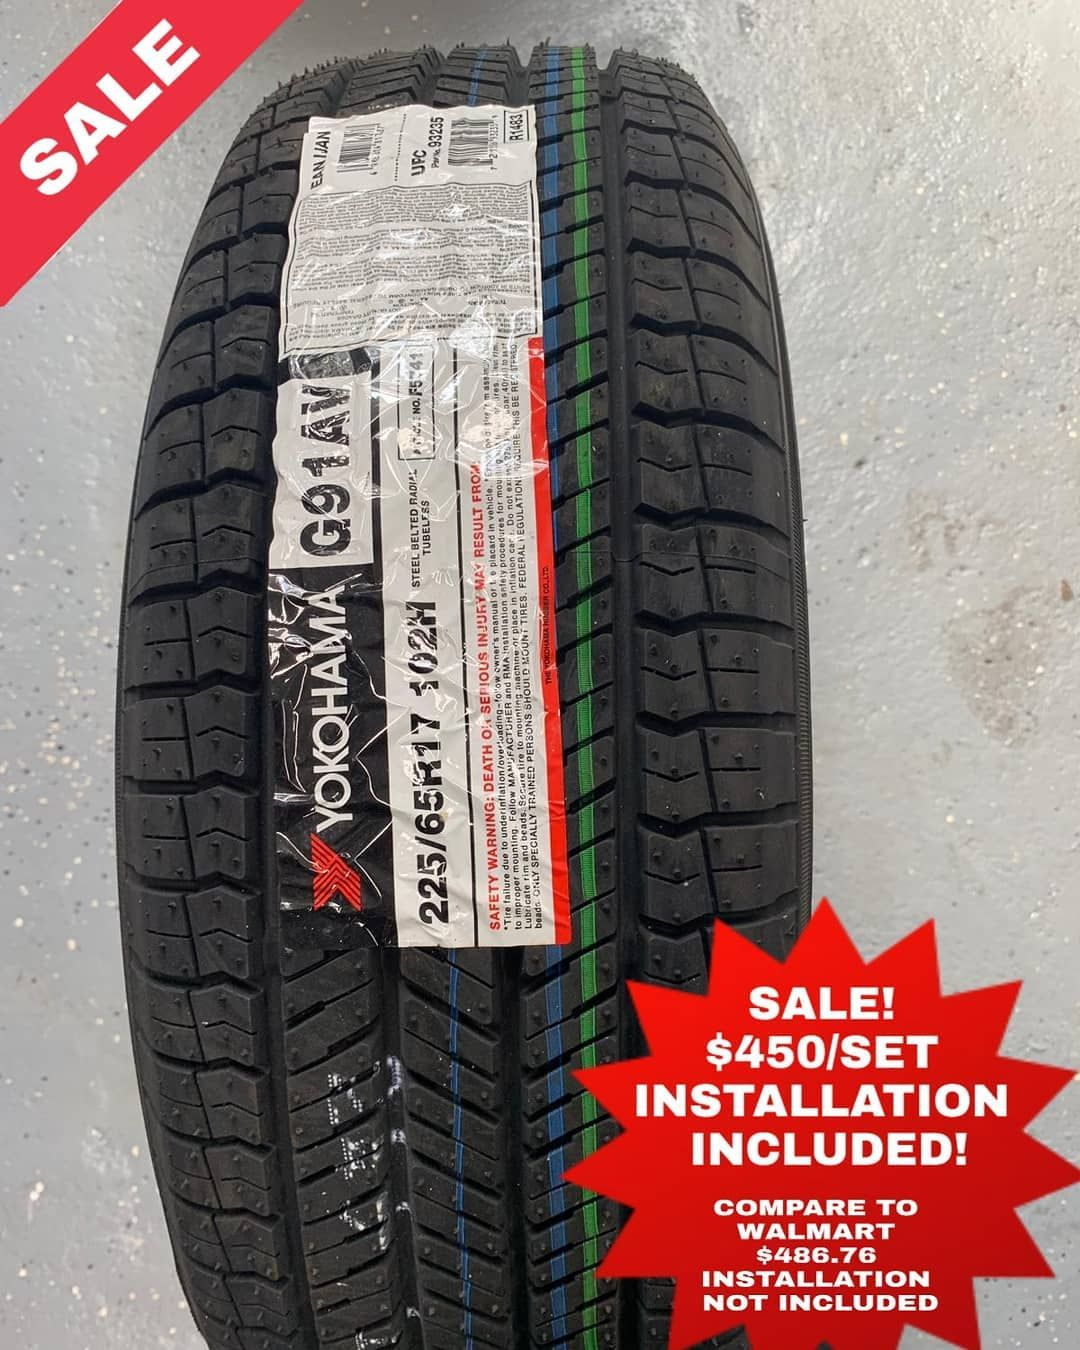 Memorial Day Sale Yokohama Size 22565r17price 450set Installation Included Compare To Walmart Prices Contact The Tirestage Instagram Instagram Posts Yokohama